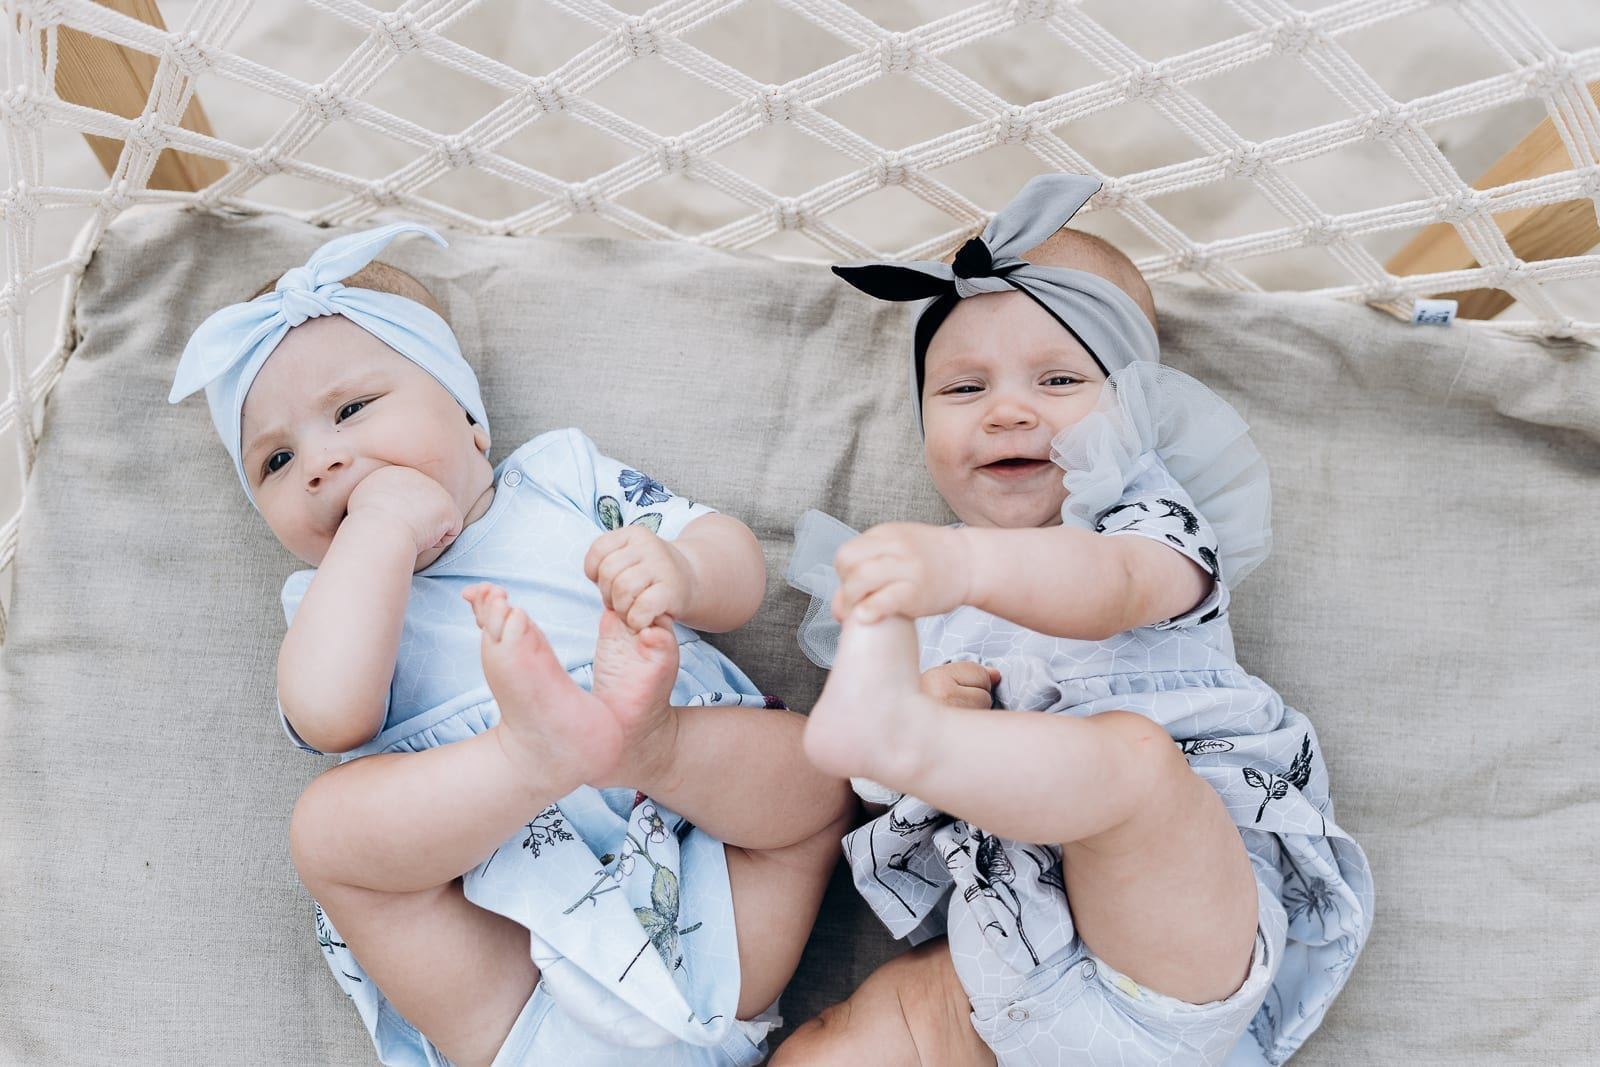 Cute baby, girl outfits for summer - bodysuit dresses with fun flower prints and tie knot headbands